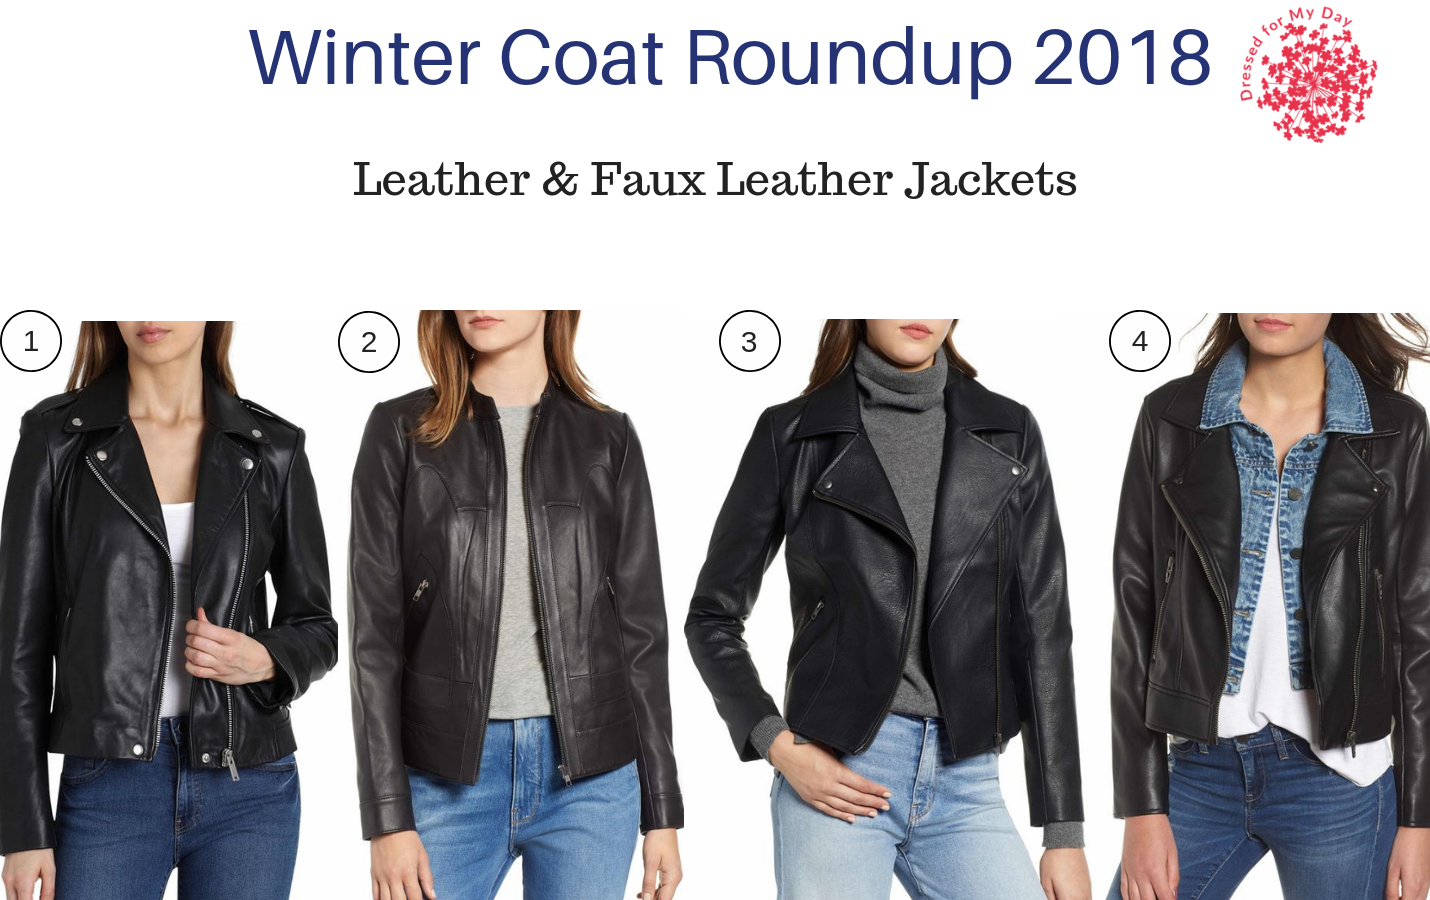 Winter Coat Roundup 2018 Leather & Faux Leather Jackets